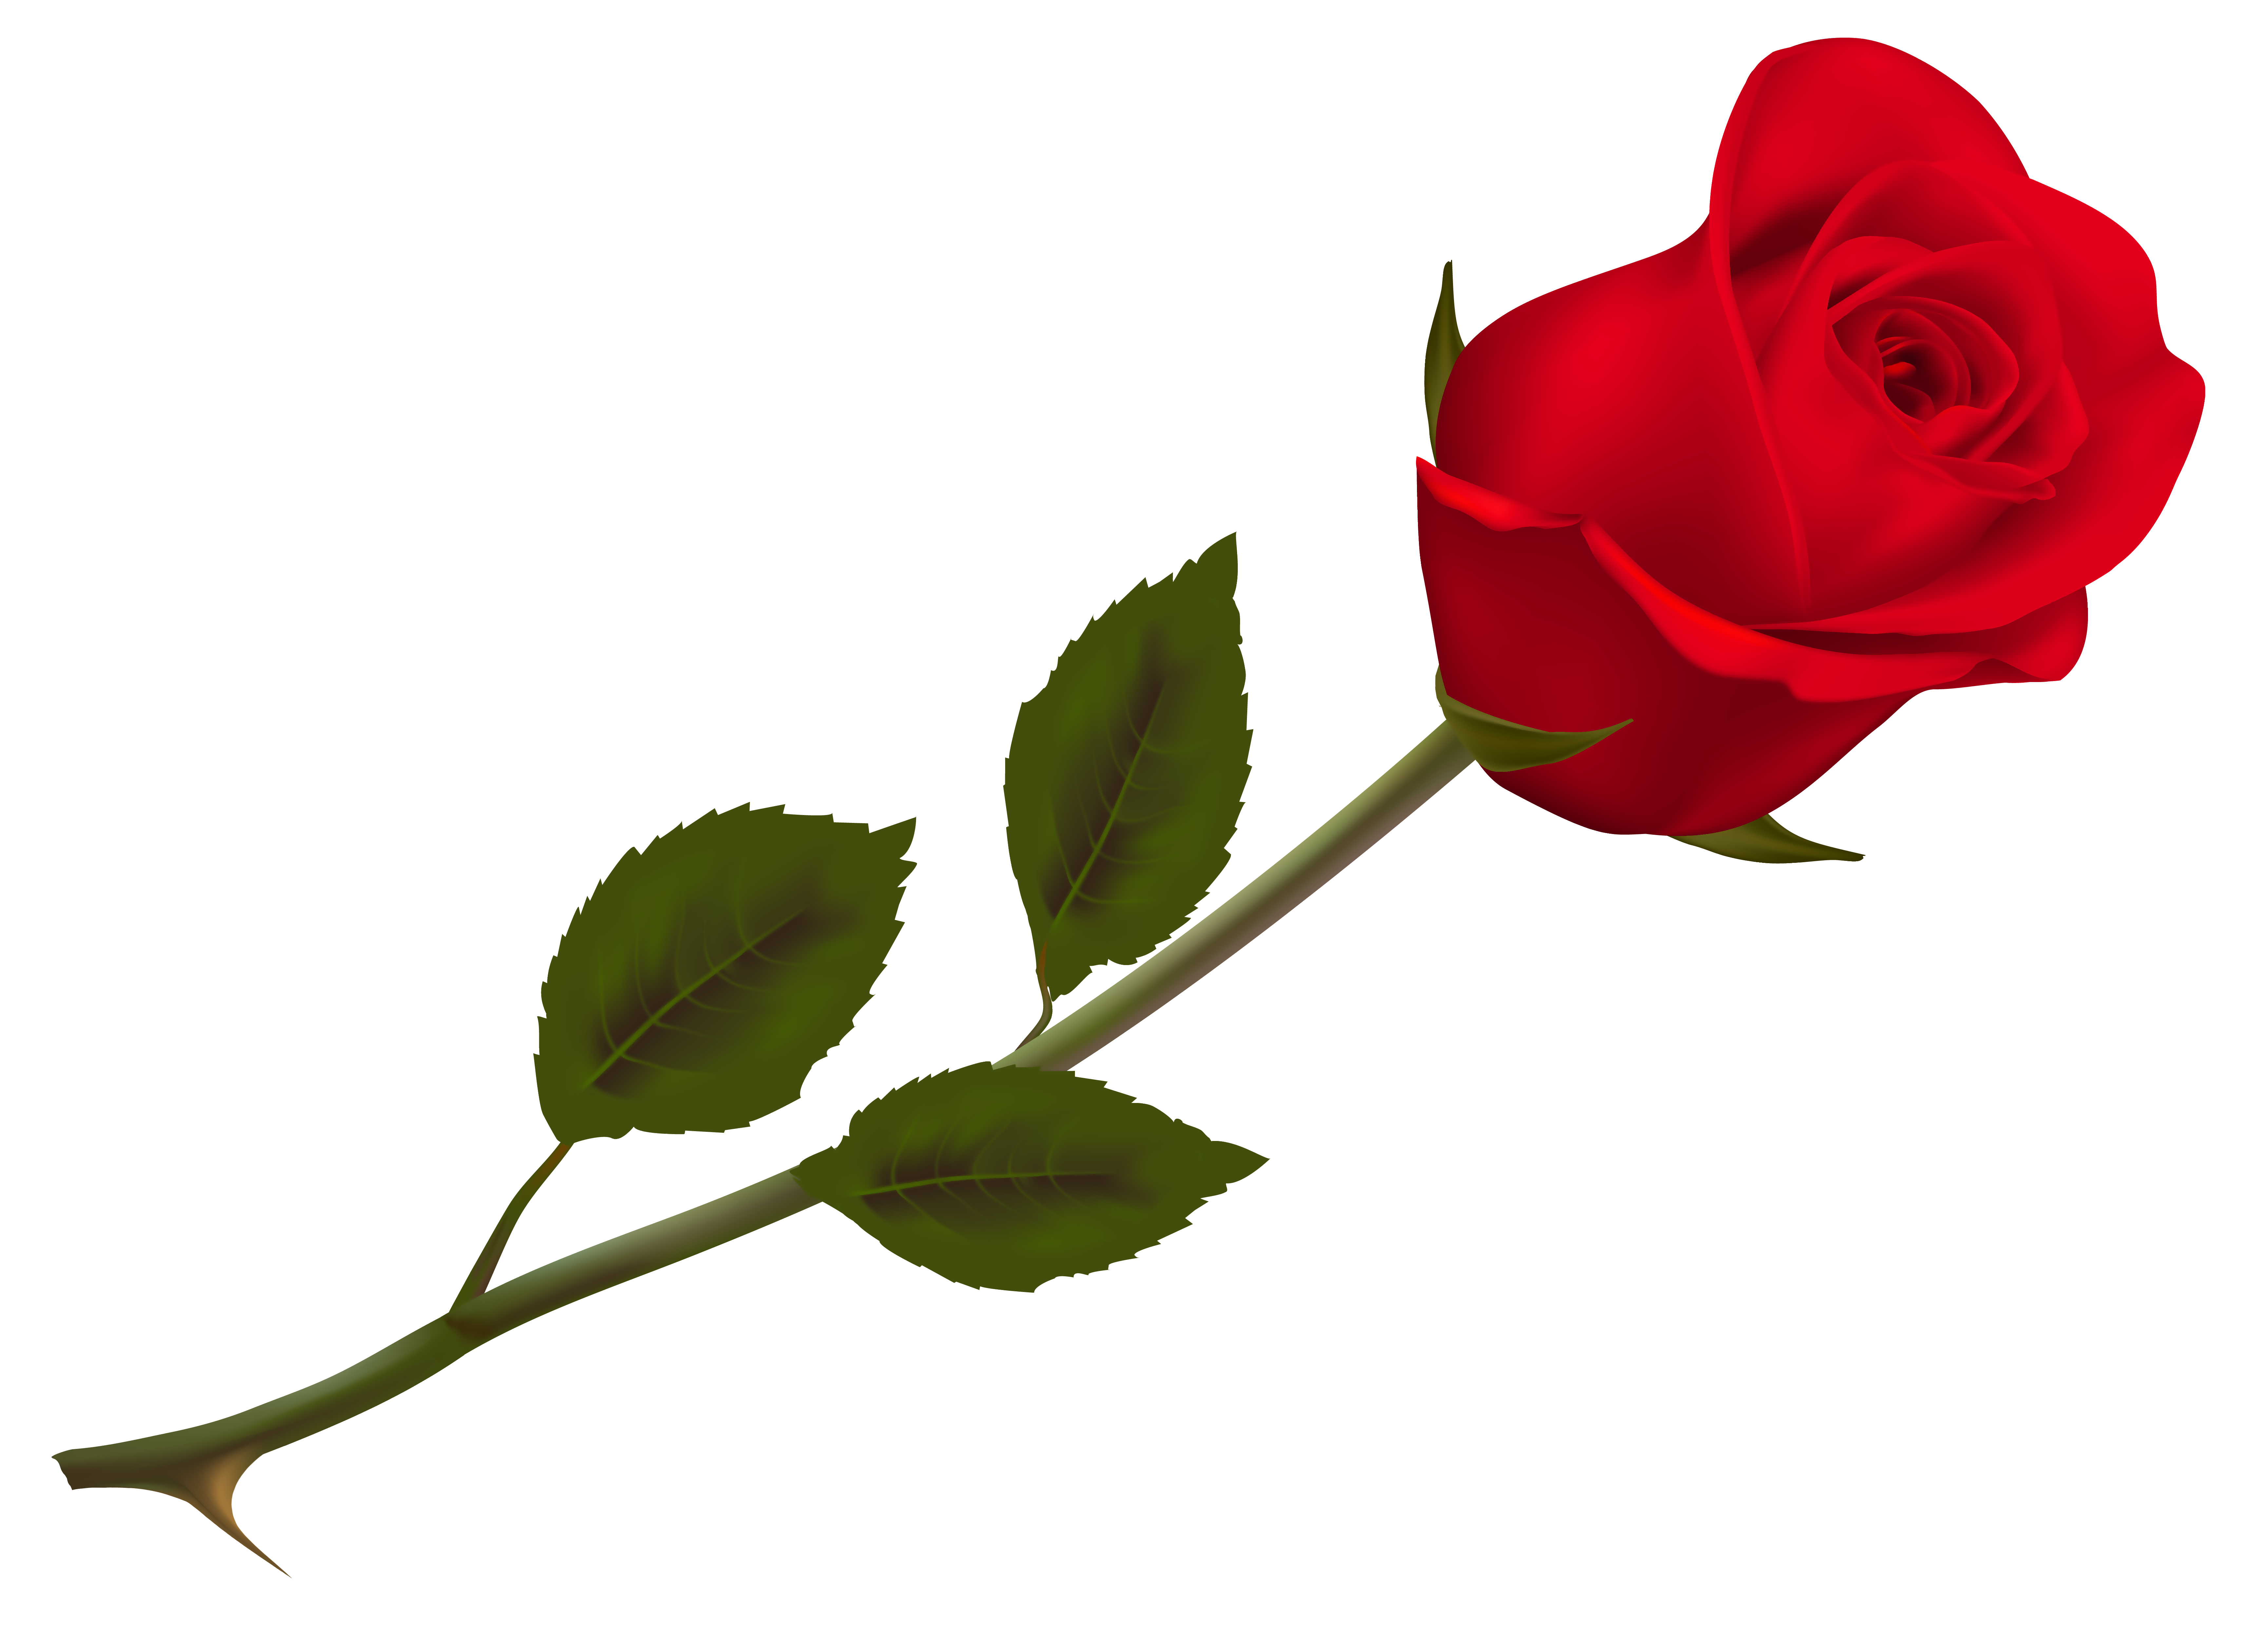 HD Quality Wallpaper | Collection: Artistic, 6889x5043 Rose